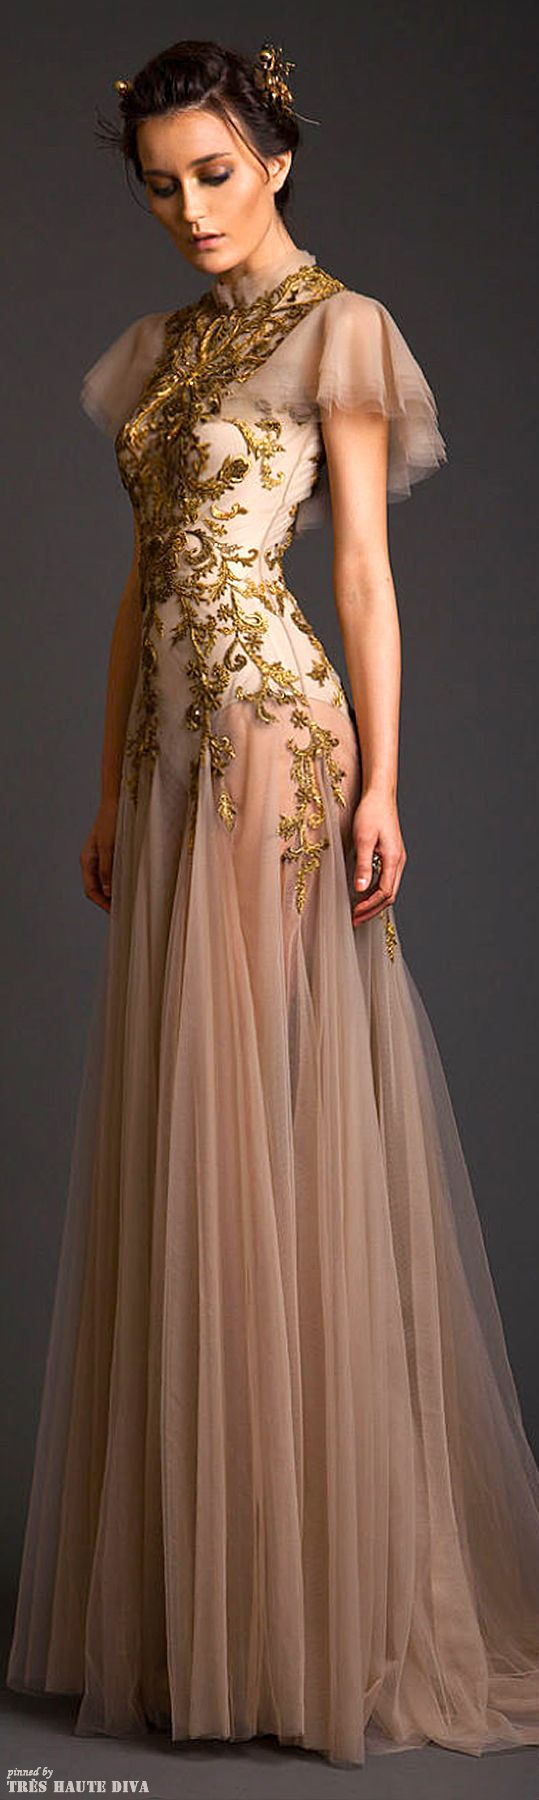 best pretty things images on pinterest beautiful clothes sweet